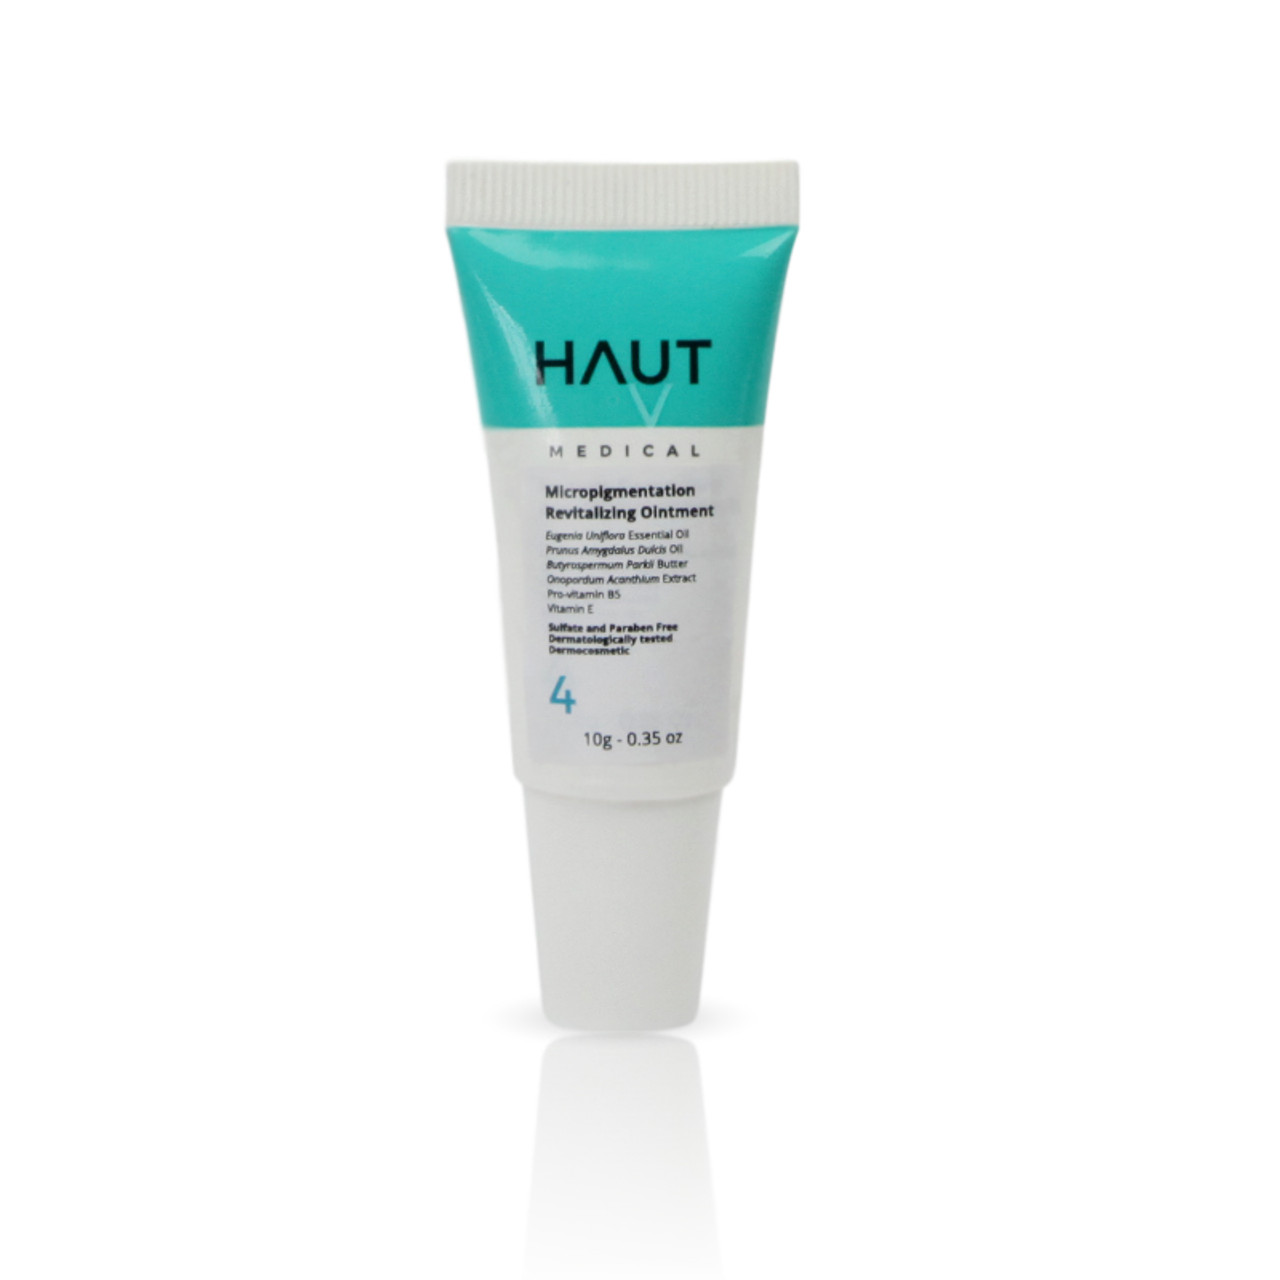 Micropigmentation Revitalizing Ointment Step 4 - Permanent Makeup (PMU) and Body Tattooing - 10g - 0.35 Oz.